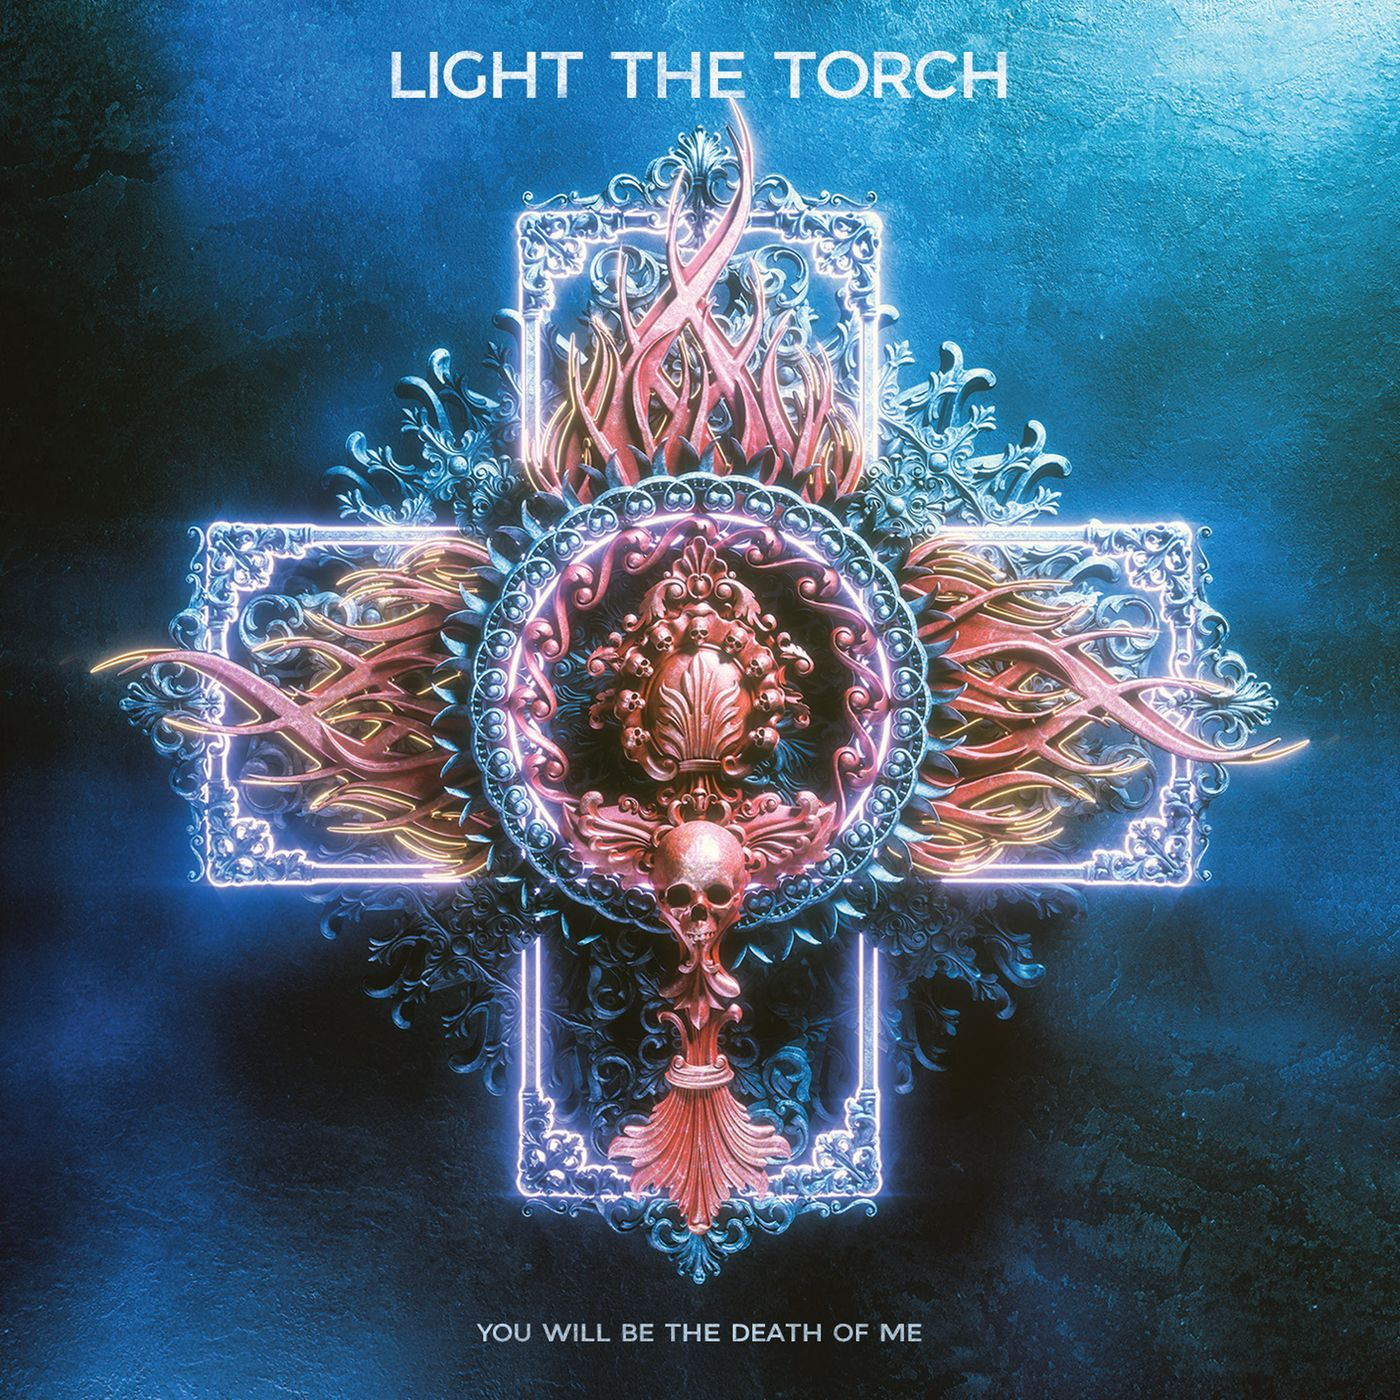 Light The Torch - Wilting in the Light [single] (2021)